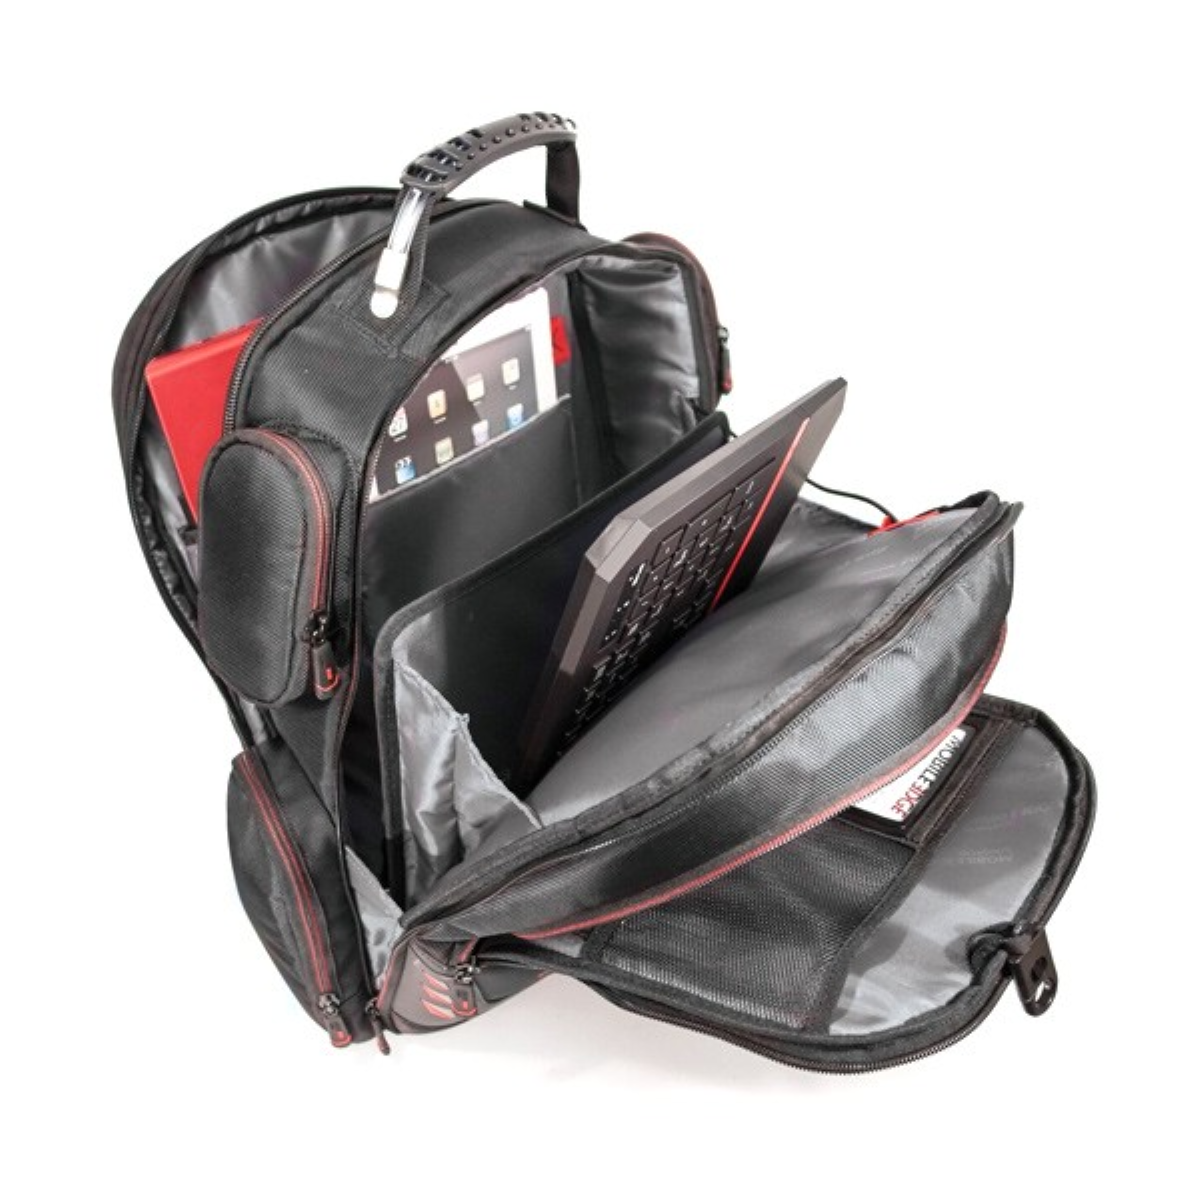 Mobile Edge Core Gaming Backpack